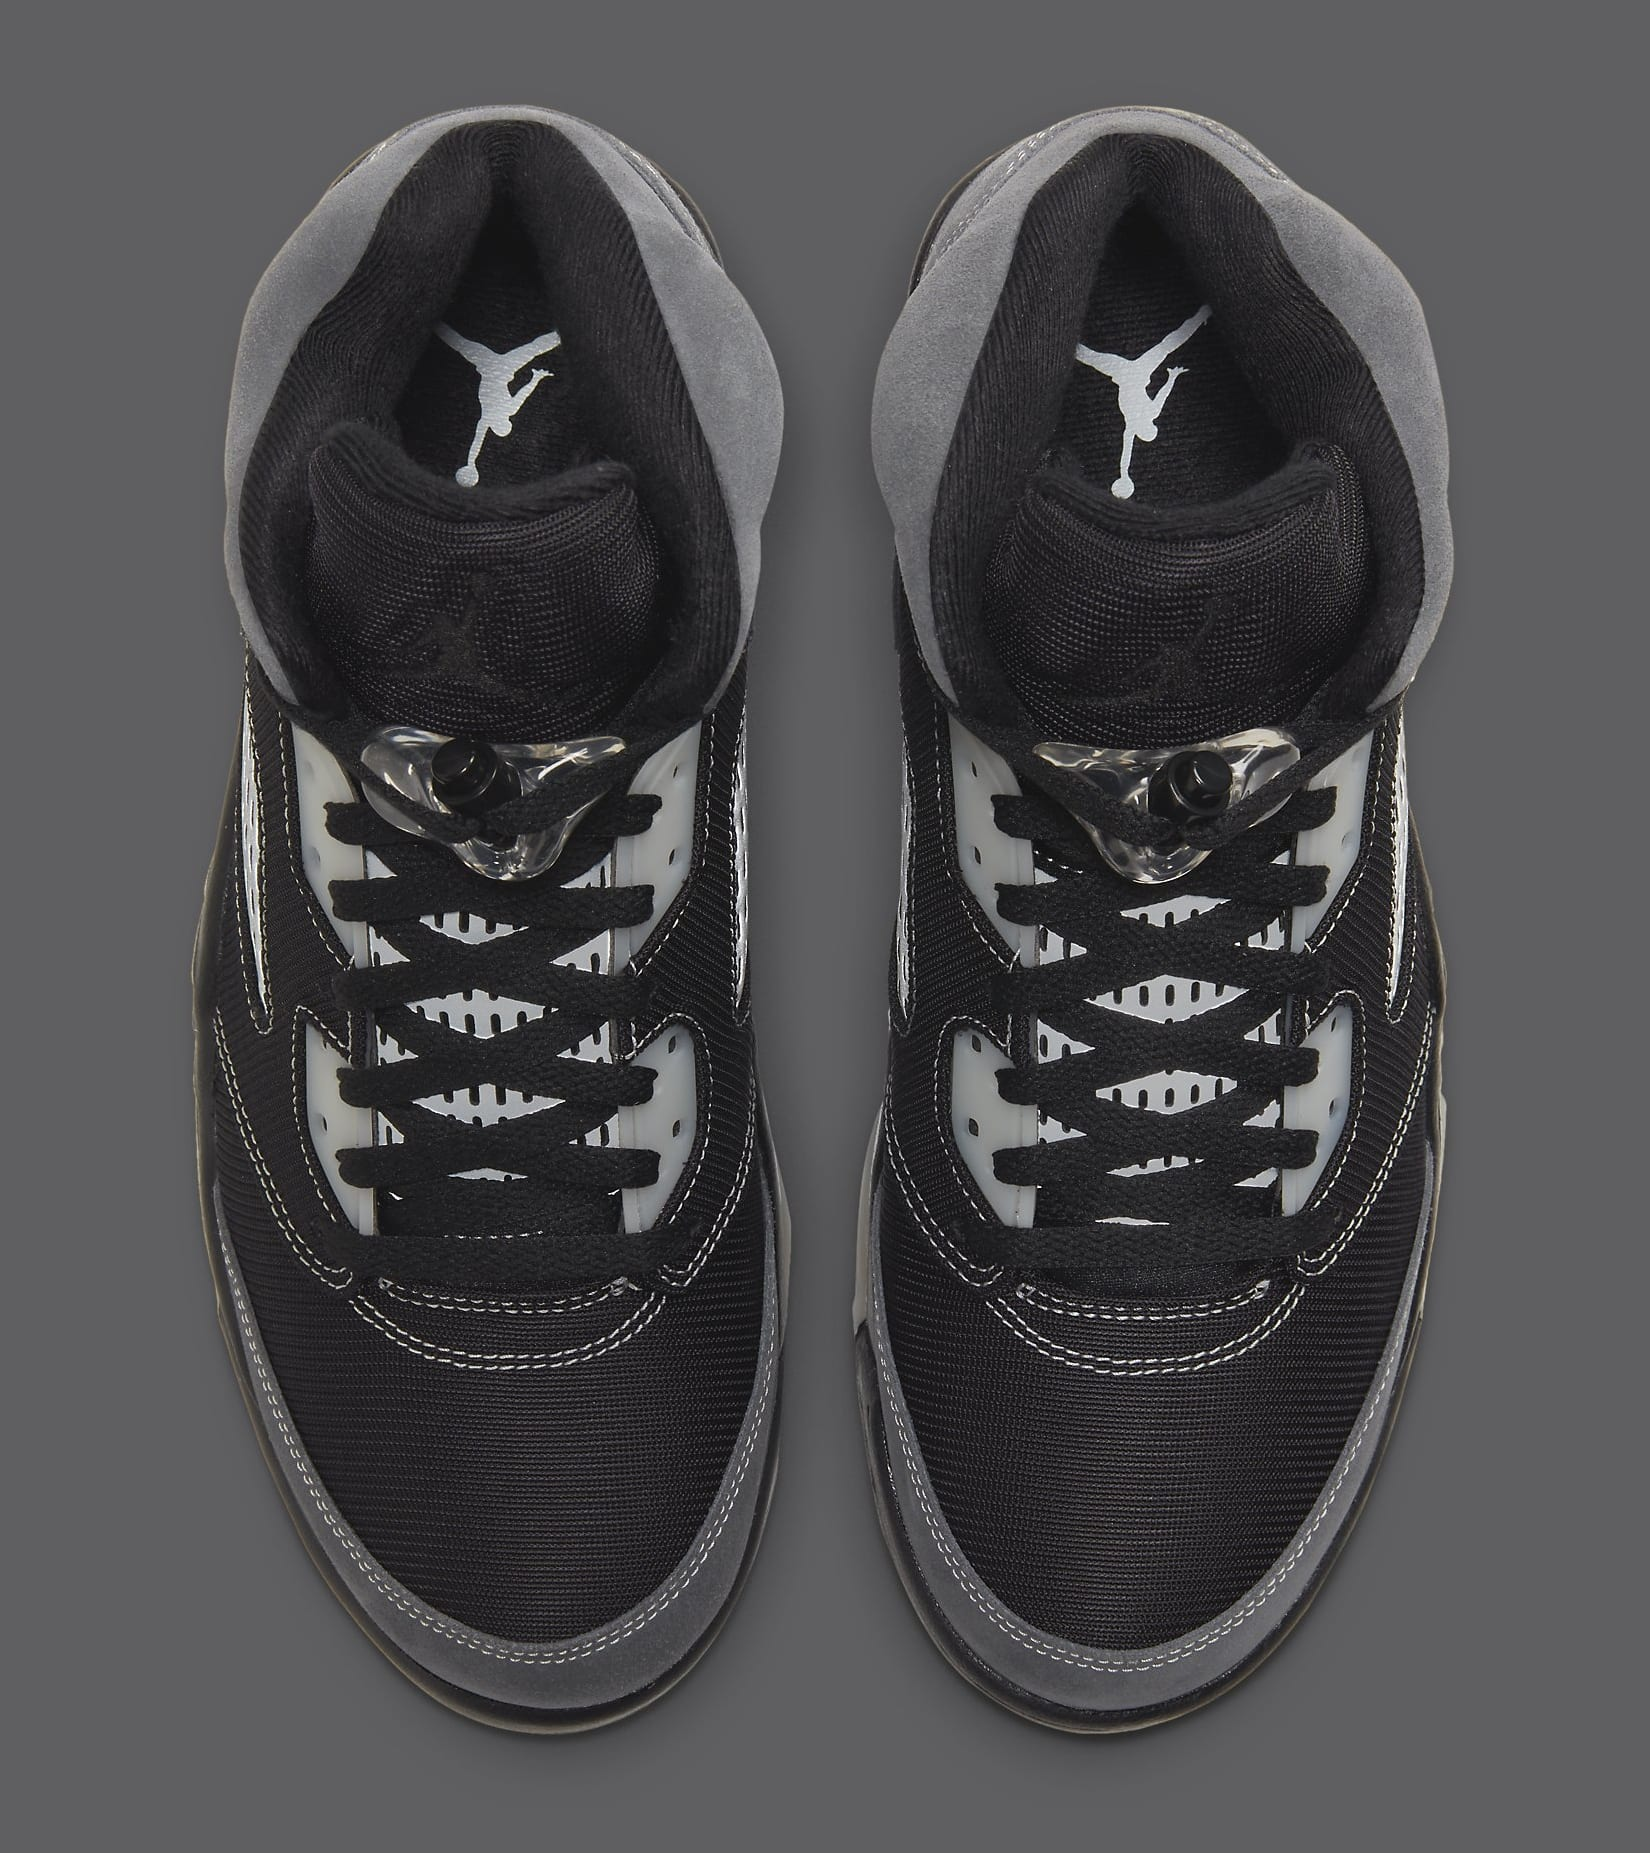 Air Jordan 5 Retro 'Anthracite' DB0731-001 Top